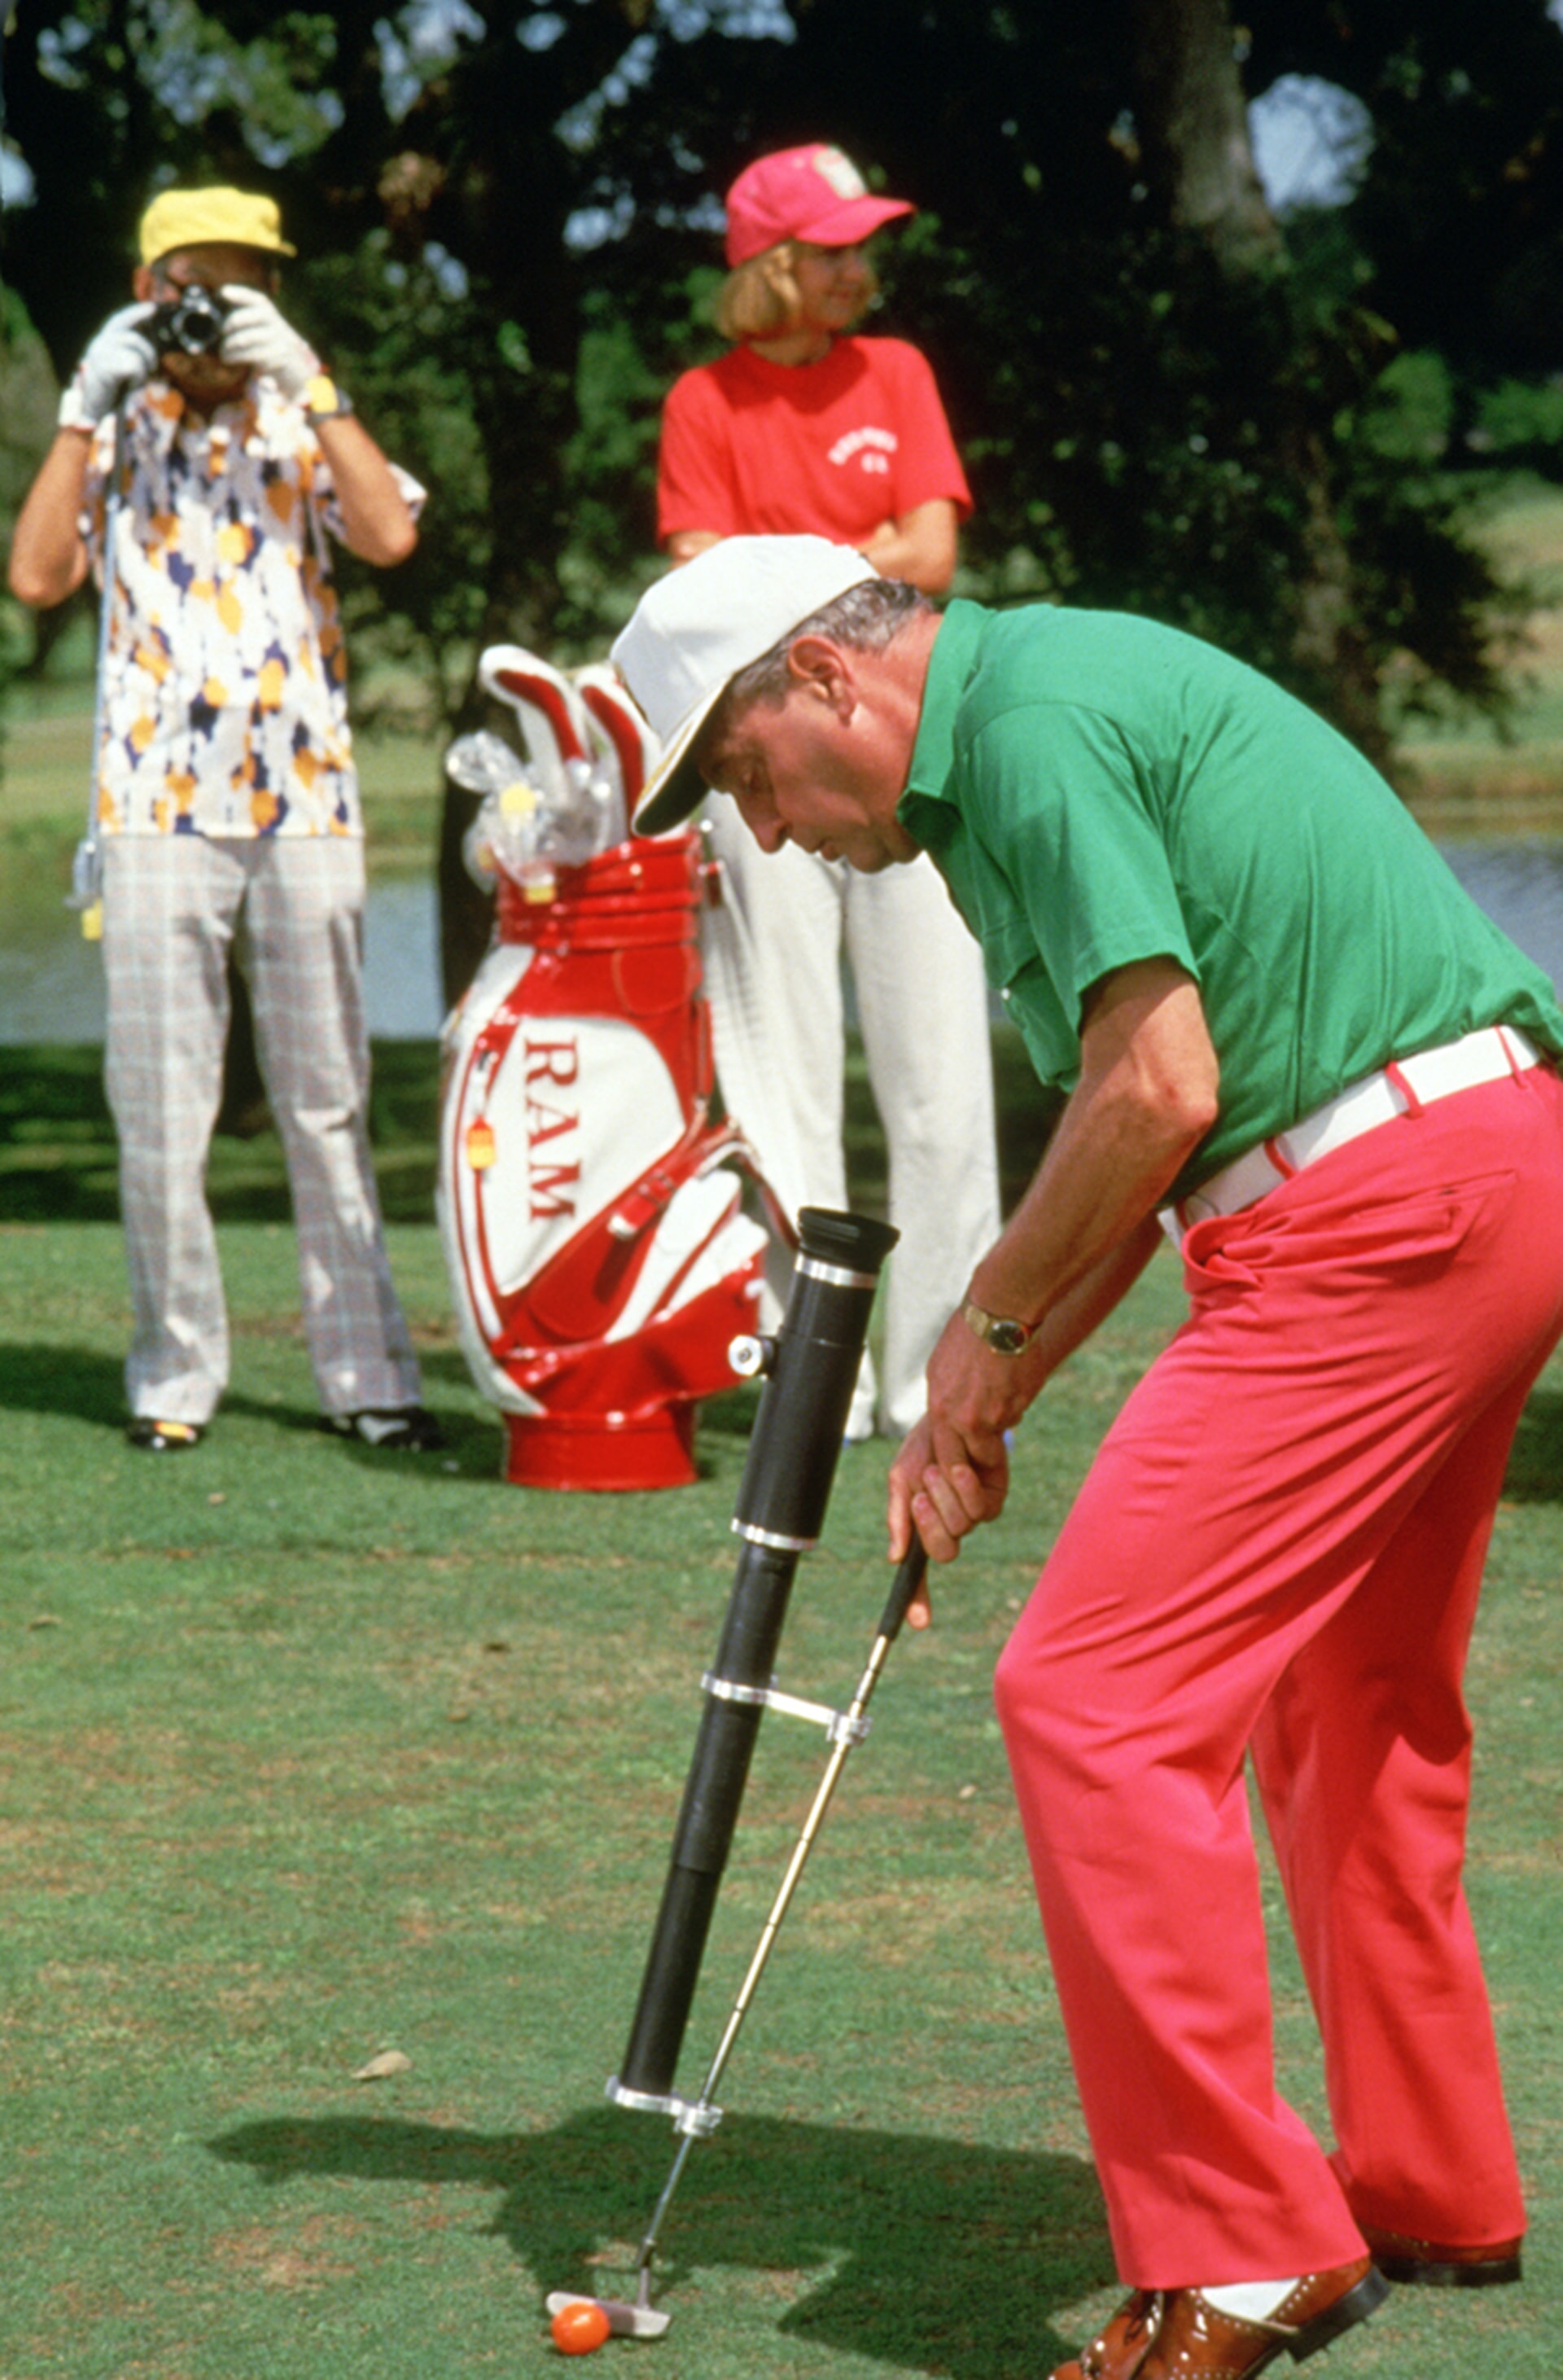 rodney dangerfield as al czervik uses his laser-guided putter in caddyshack